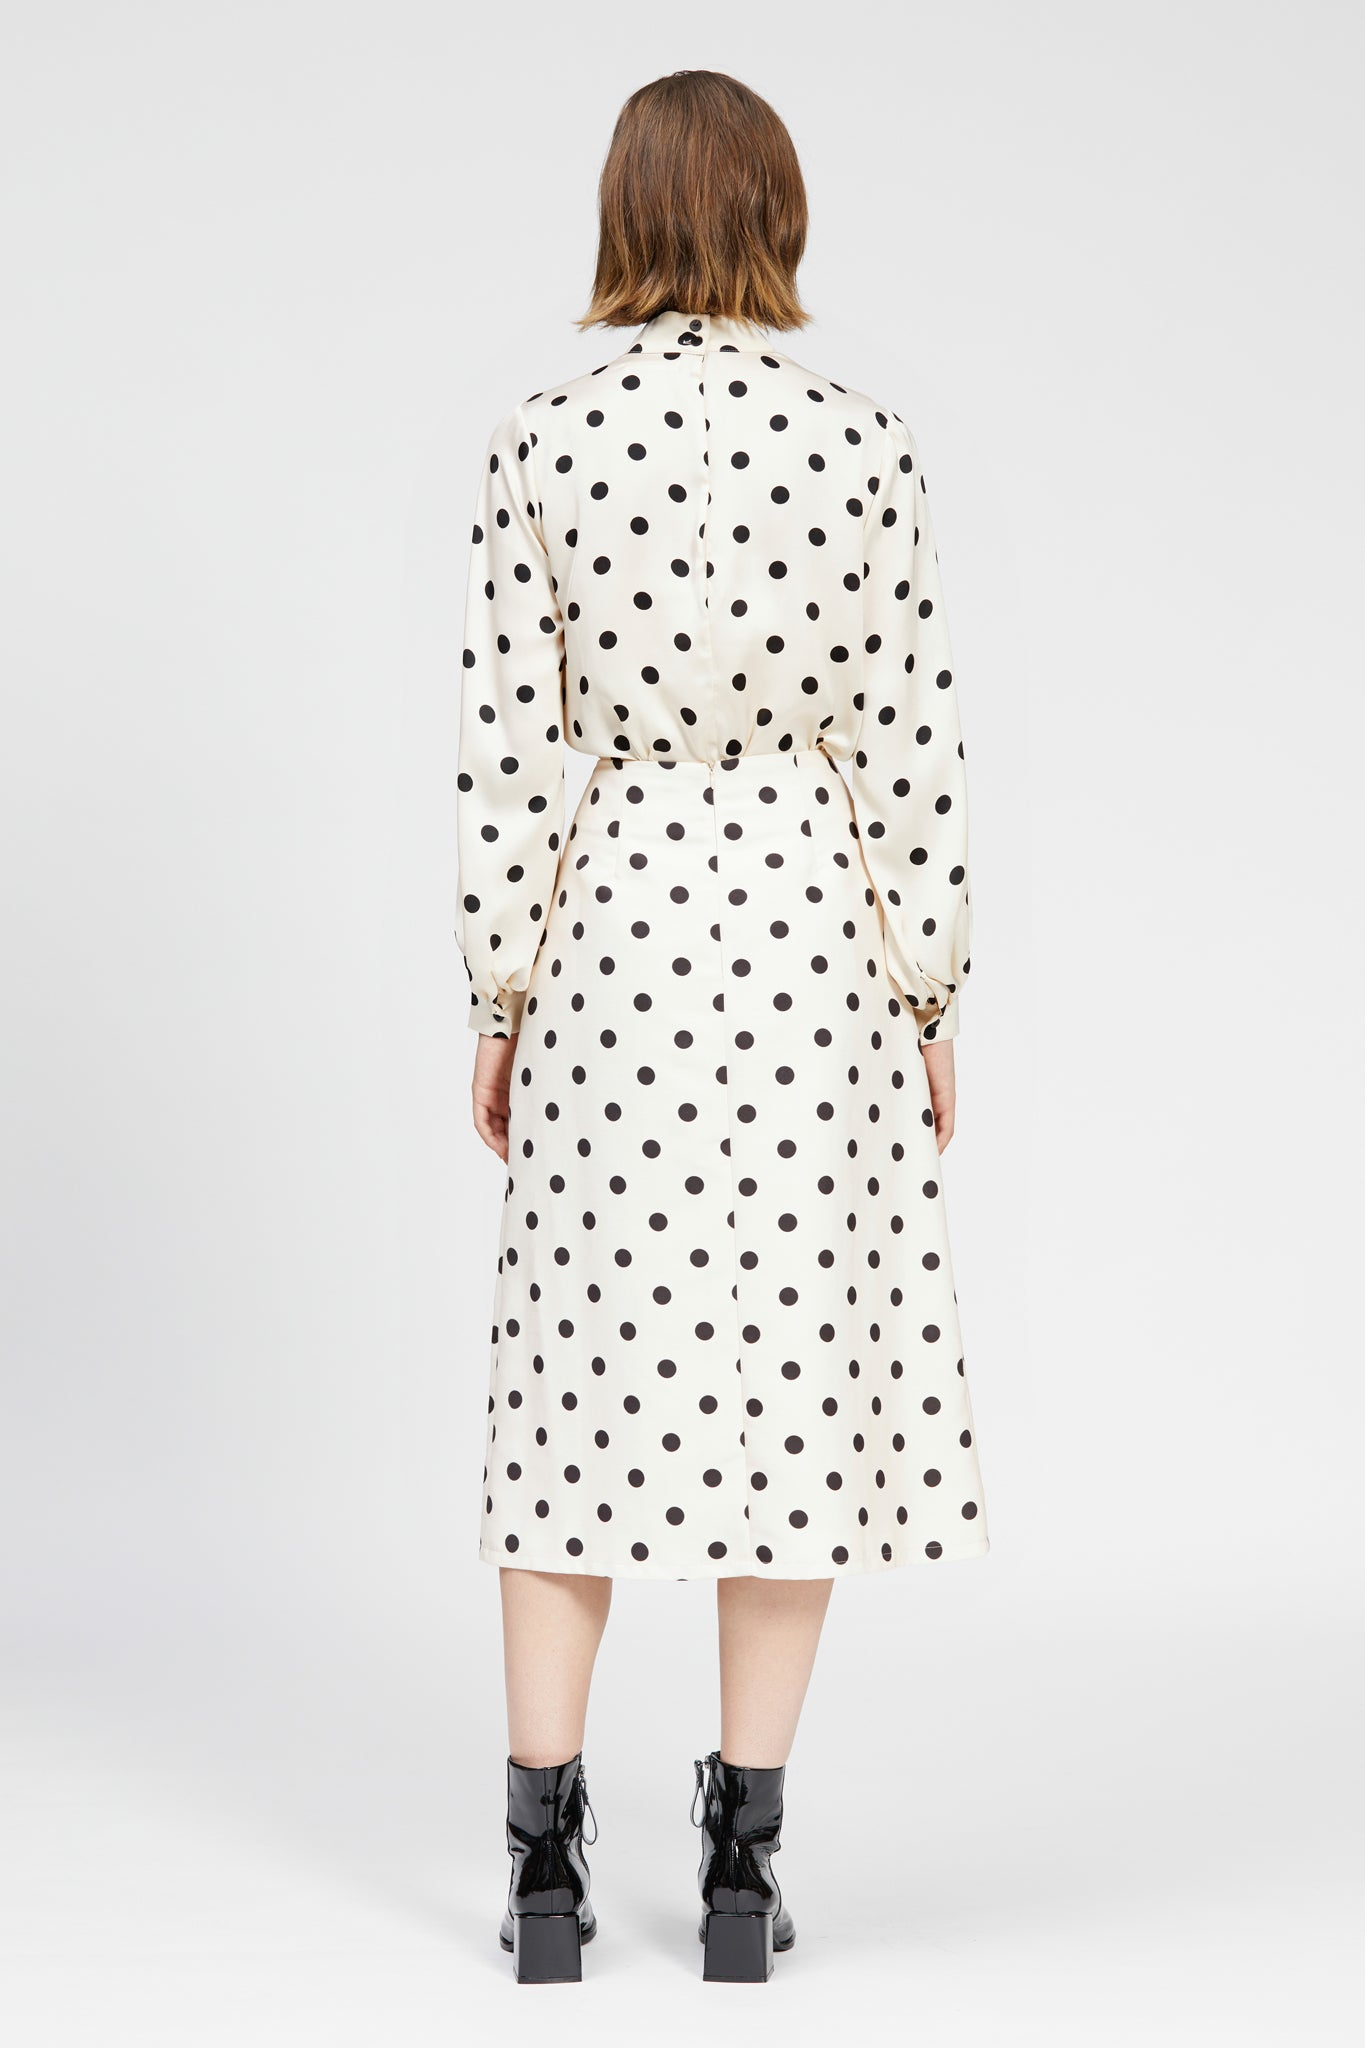 antelao skirt cream/black spot